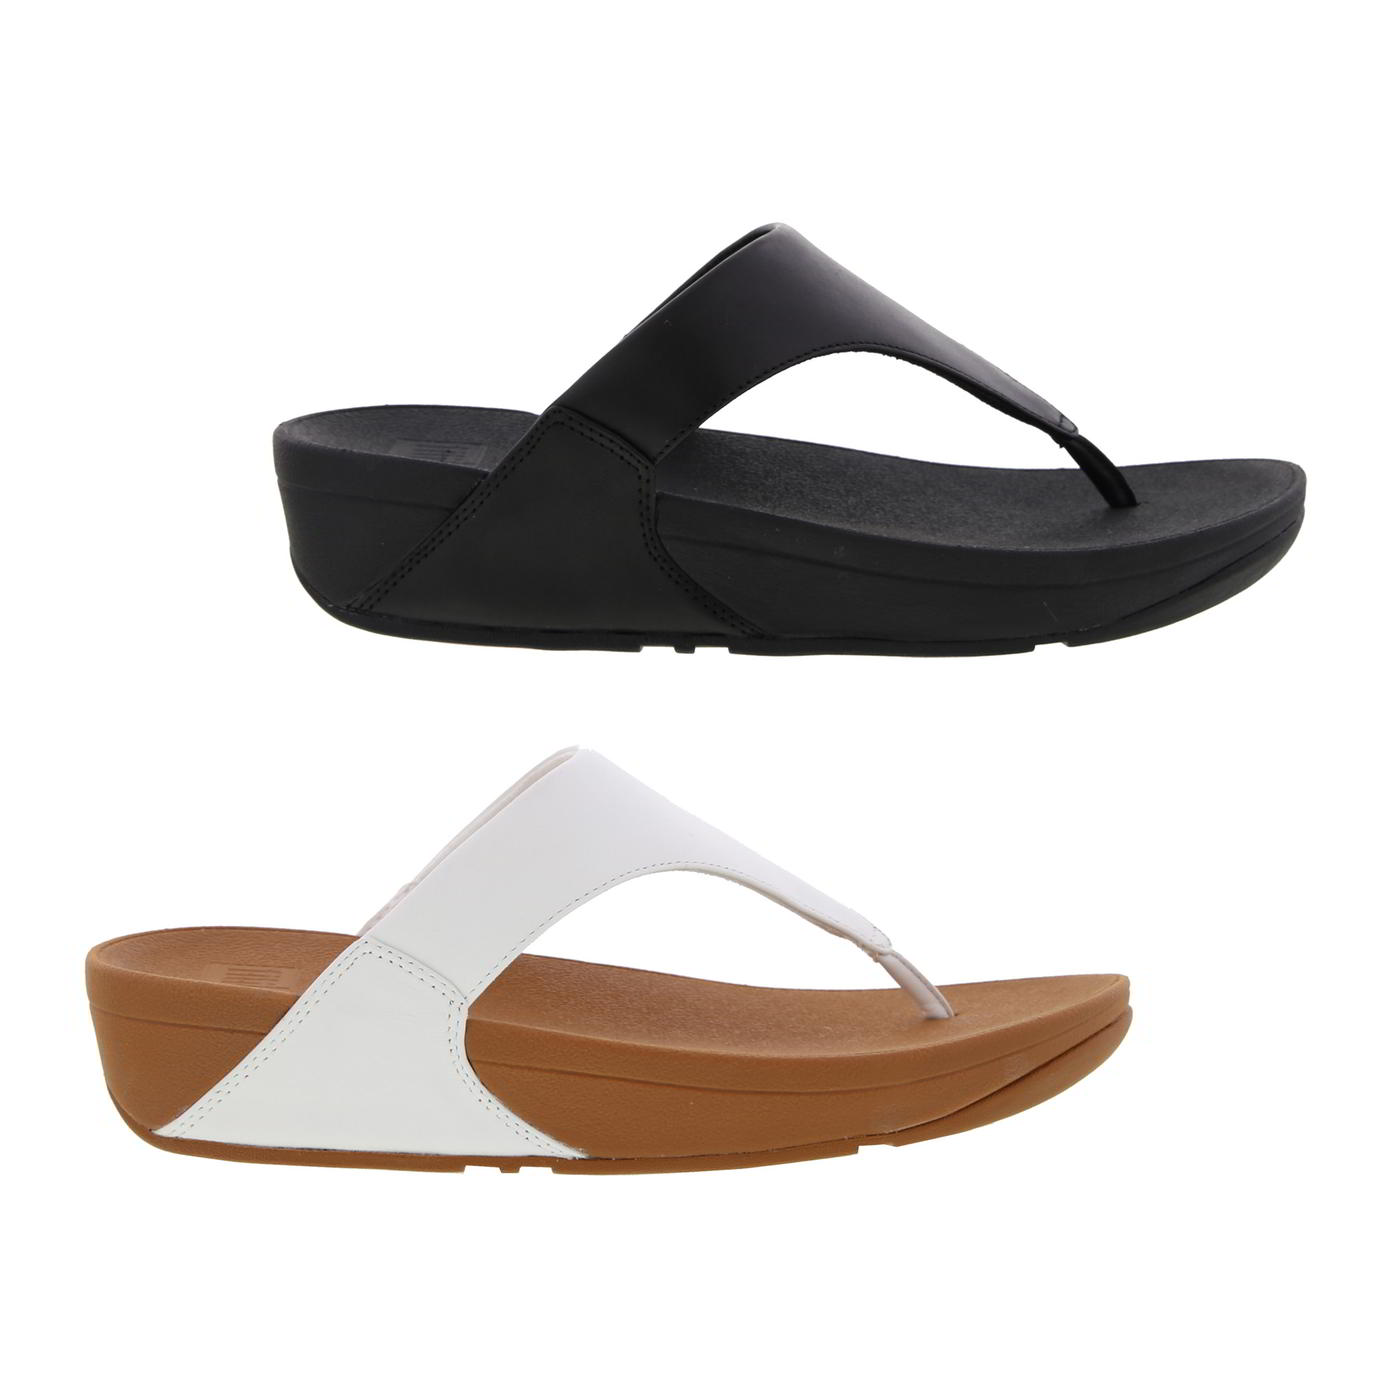 454f74f9e This ensures you get the fabulous all day comfort Fitflop is known for.